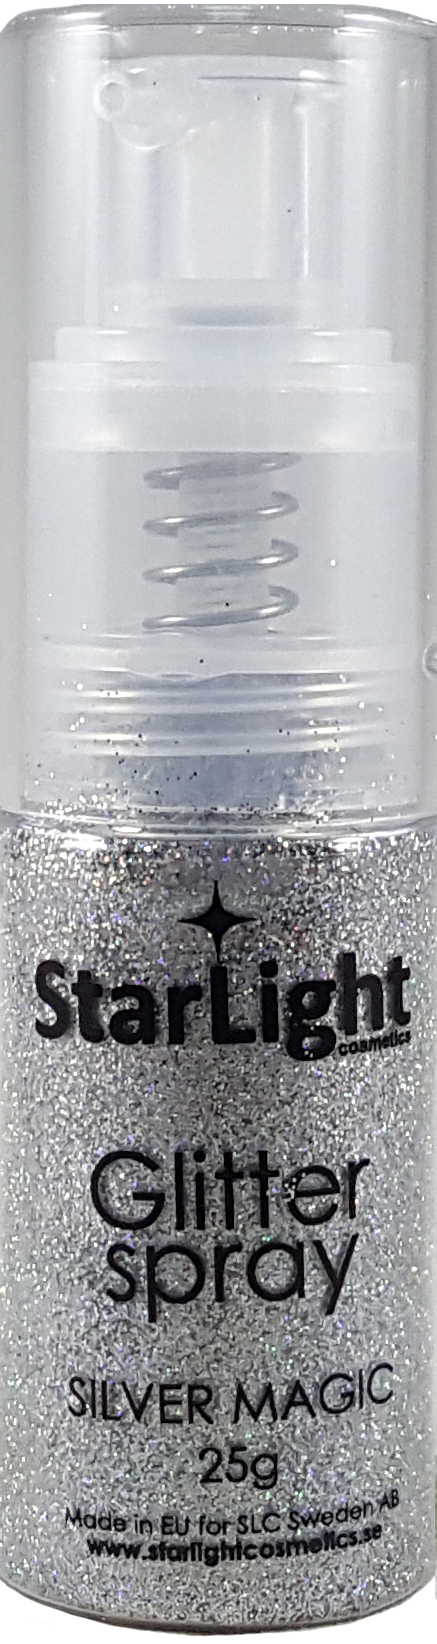 Naglar Glitter Spray Silver Magic - 25 gram